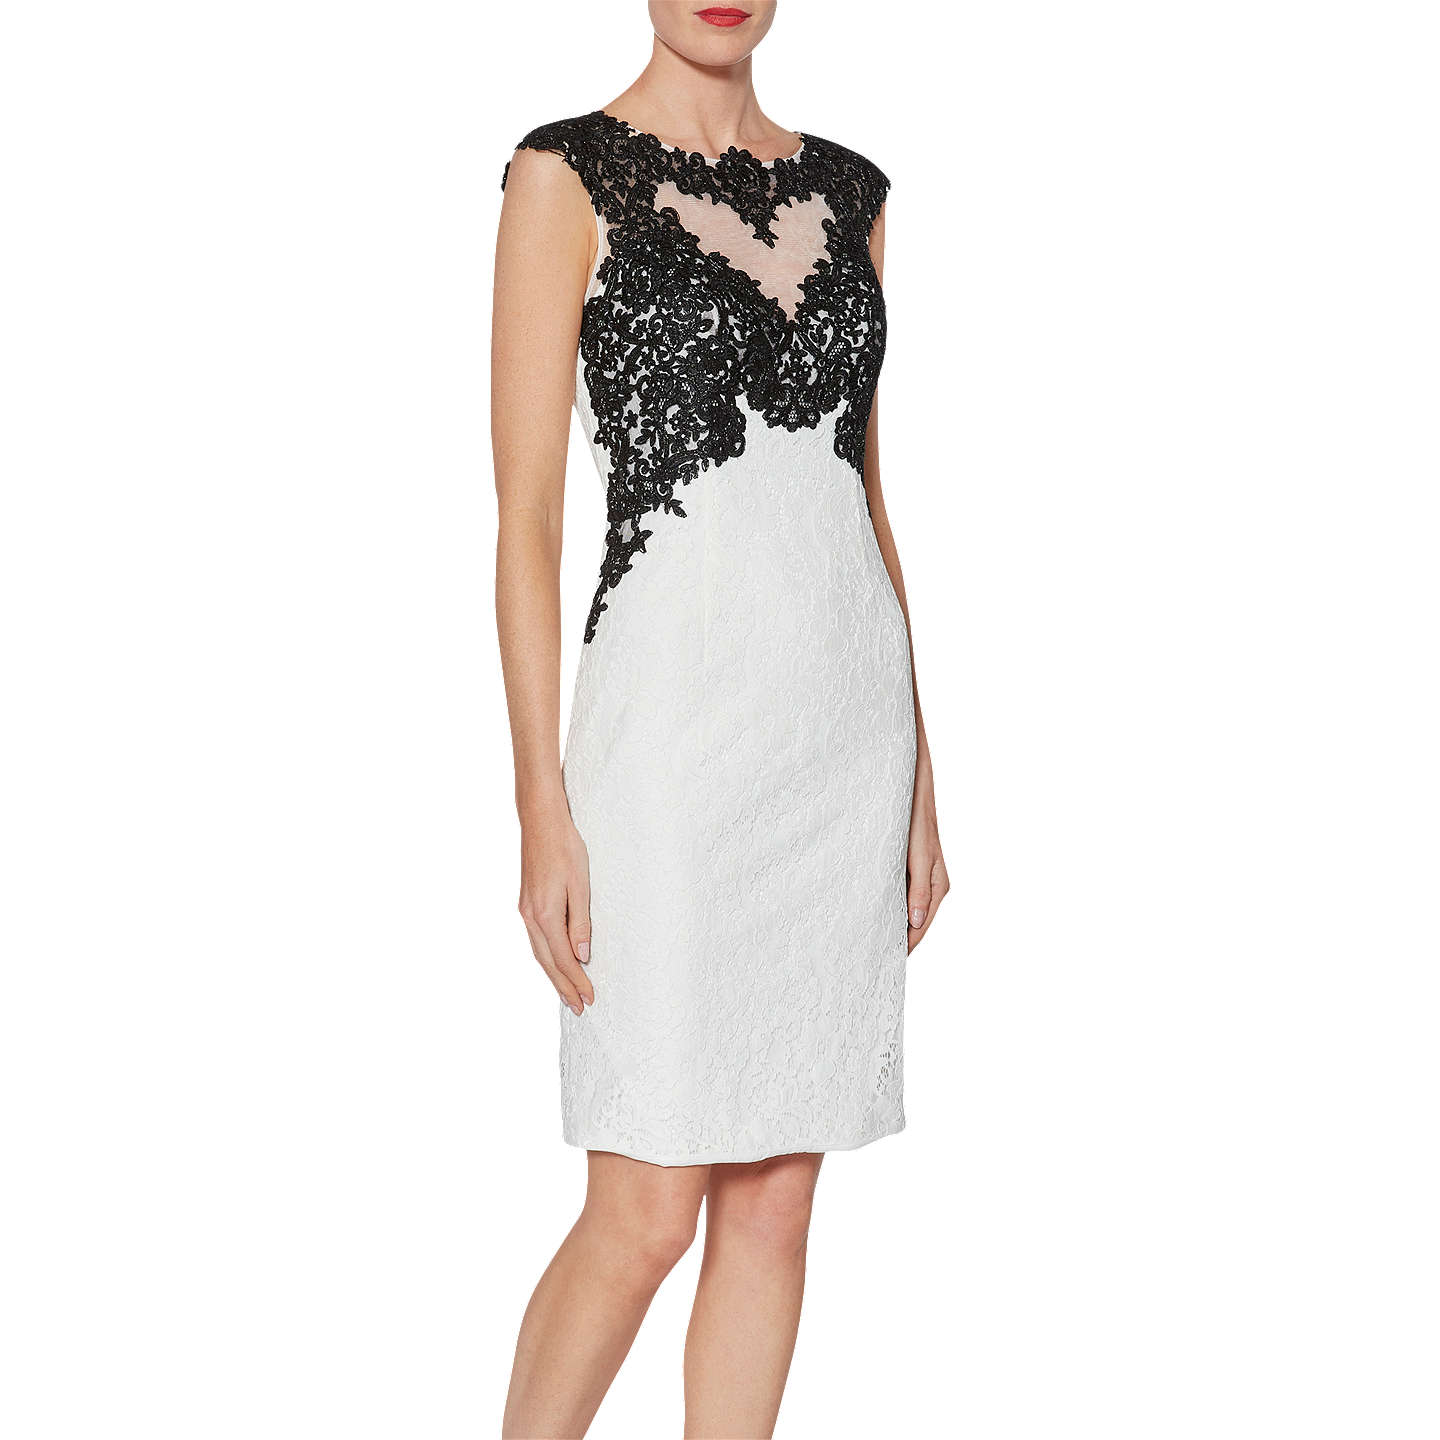 Excellent Online Buy Cheap Affordable Womens Tallulah Contrast Lace Party Dress Gina Bacconi Sale High Quality Clearance Looking For c70UHoM1iv